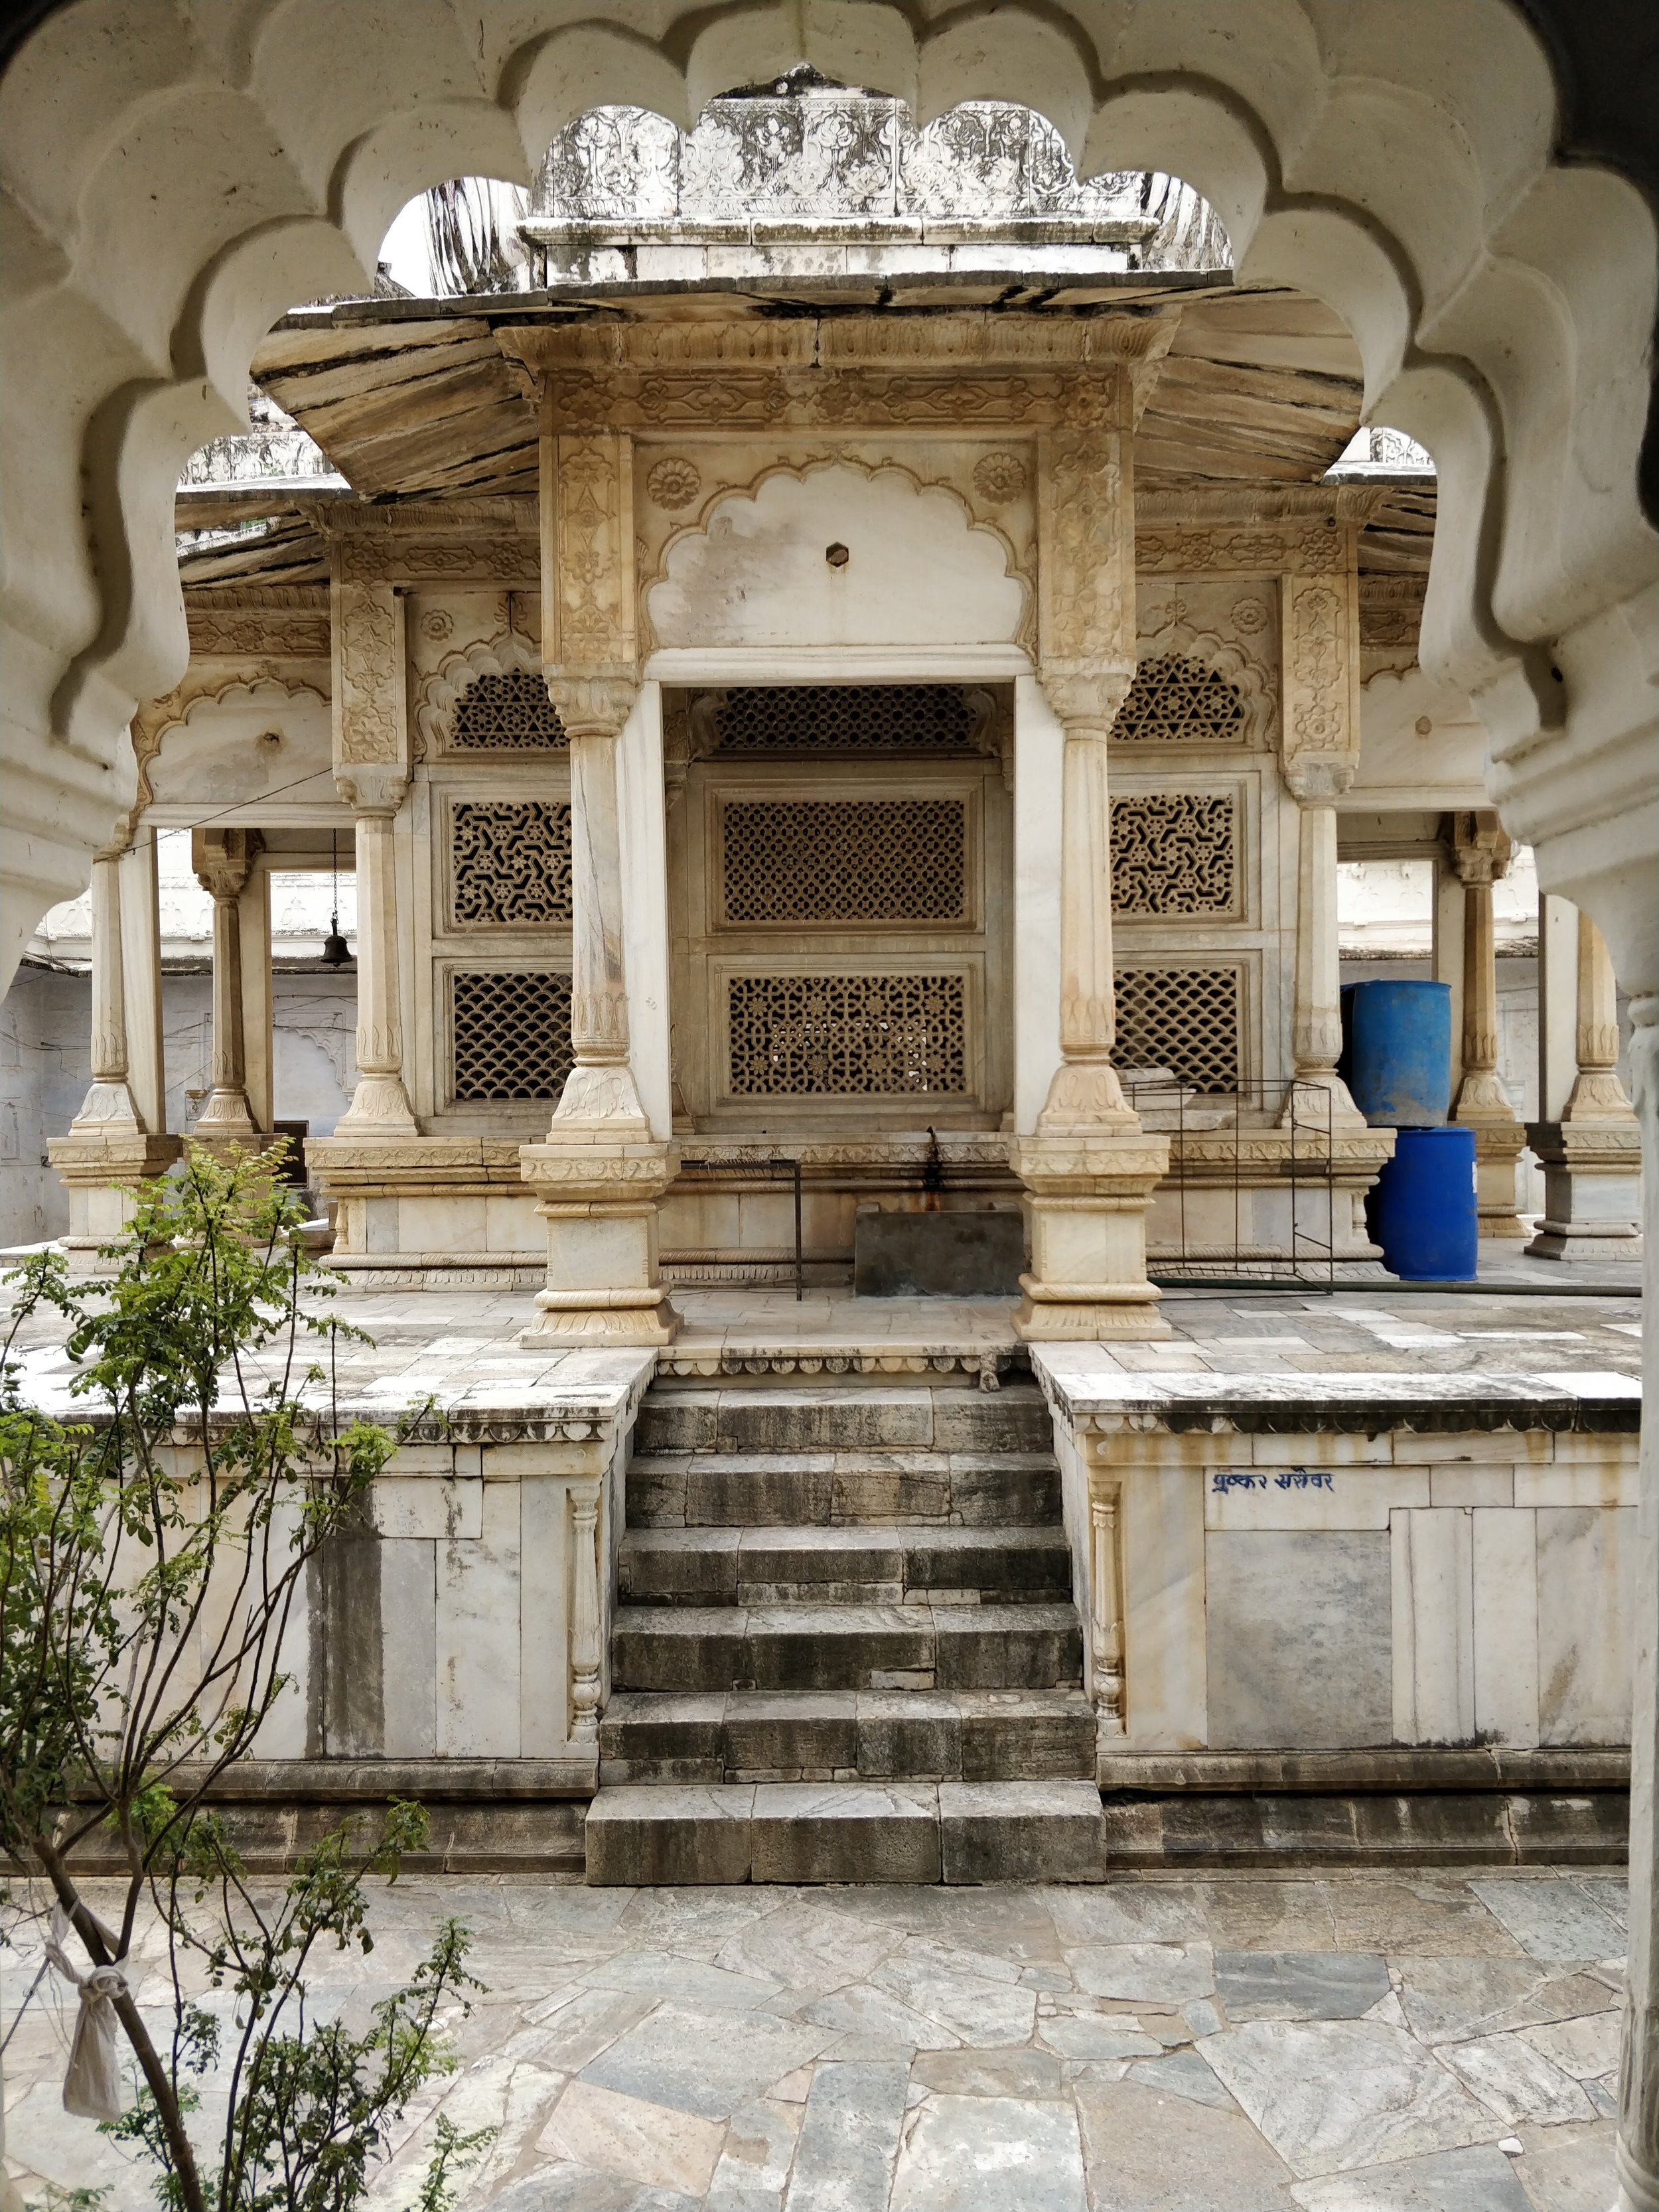 Temple View by Sameer Chadha